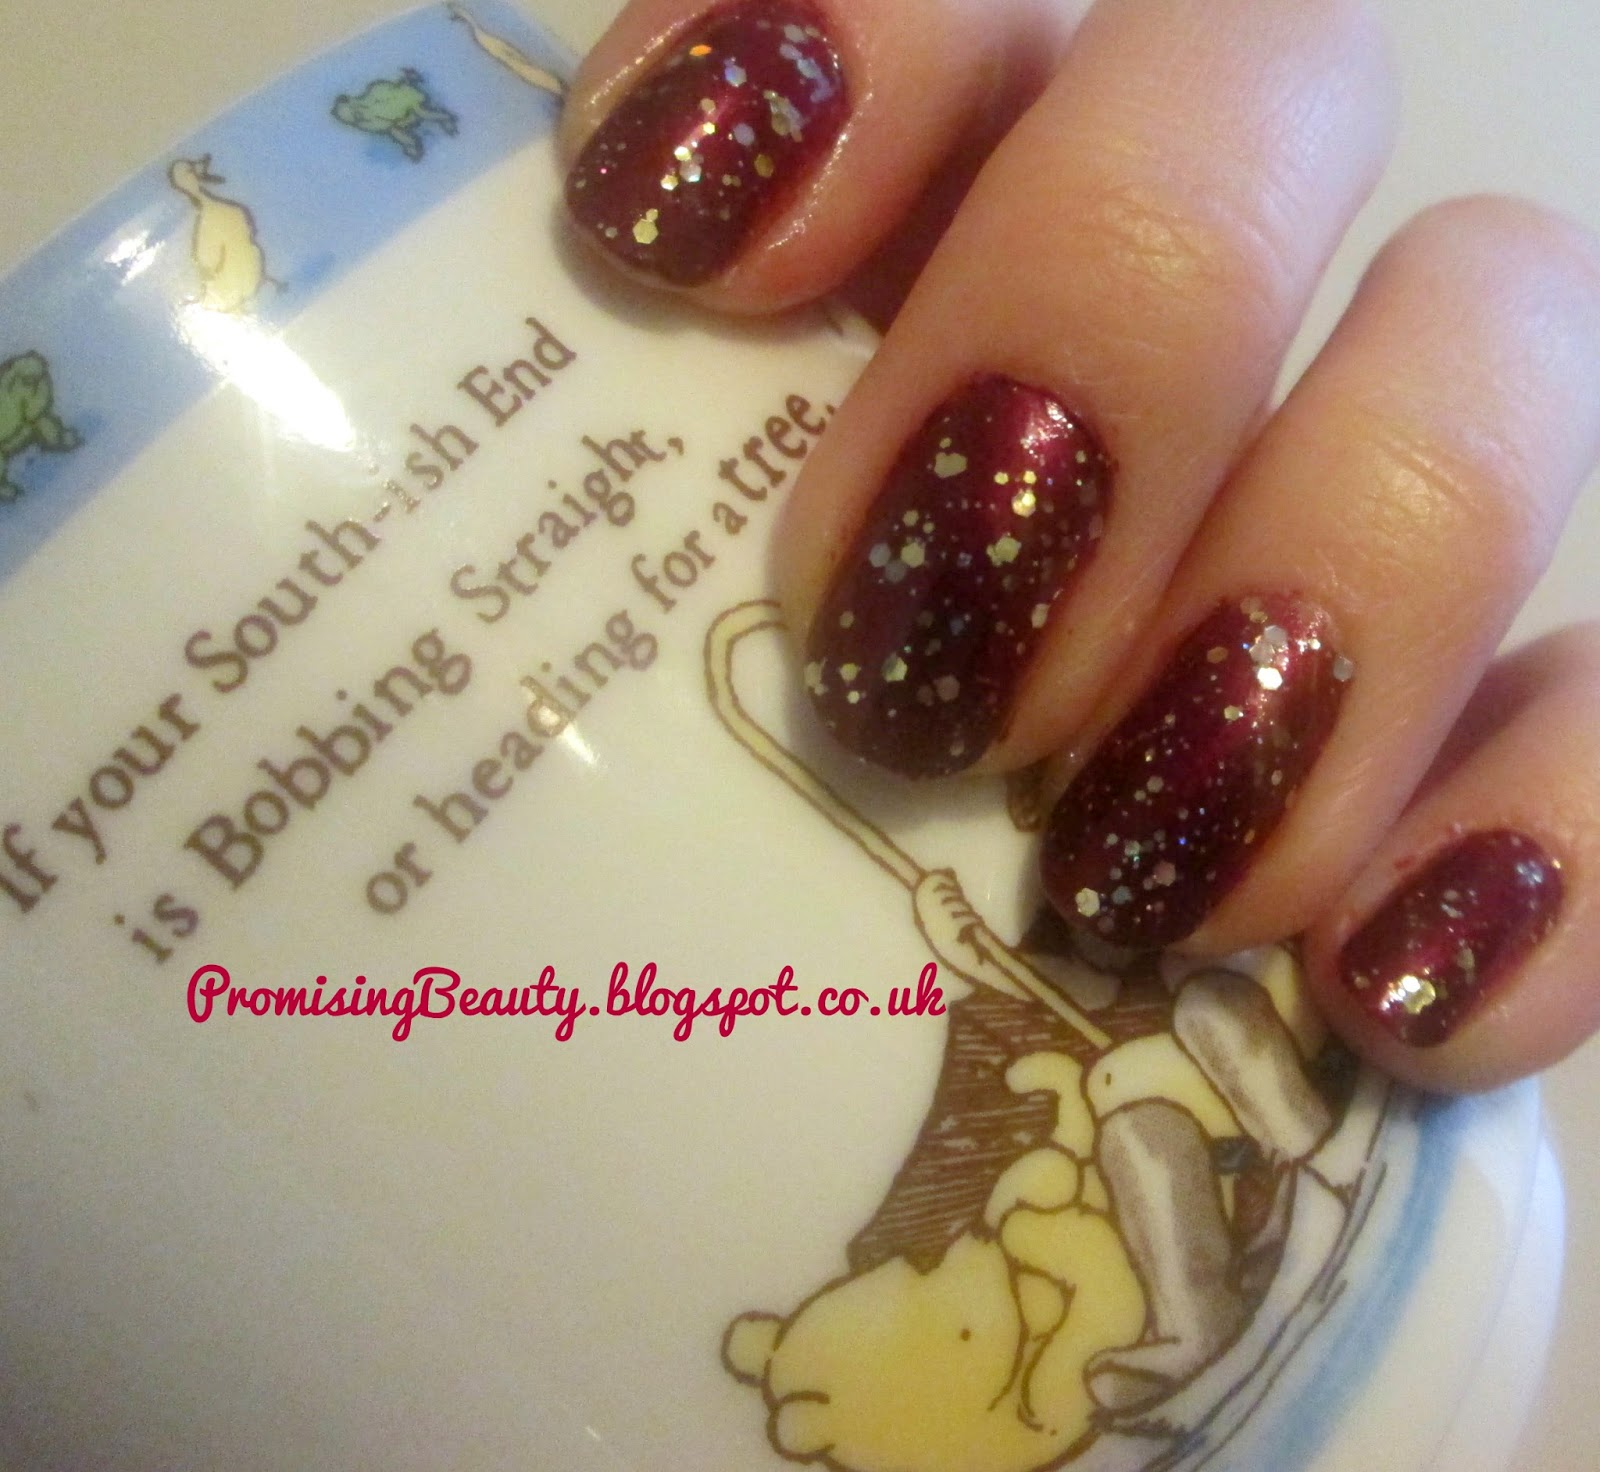 Autumn nail polish, burgundy oxblood nails with gold glitter, Barry M and Winne the Pooh mug